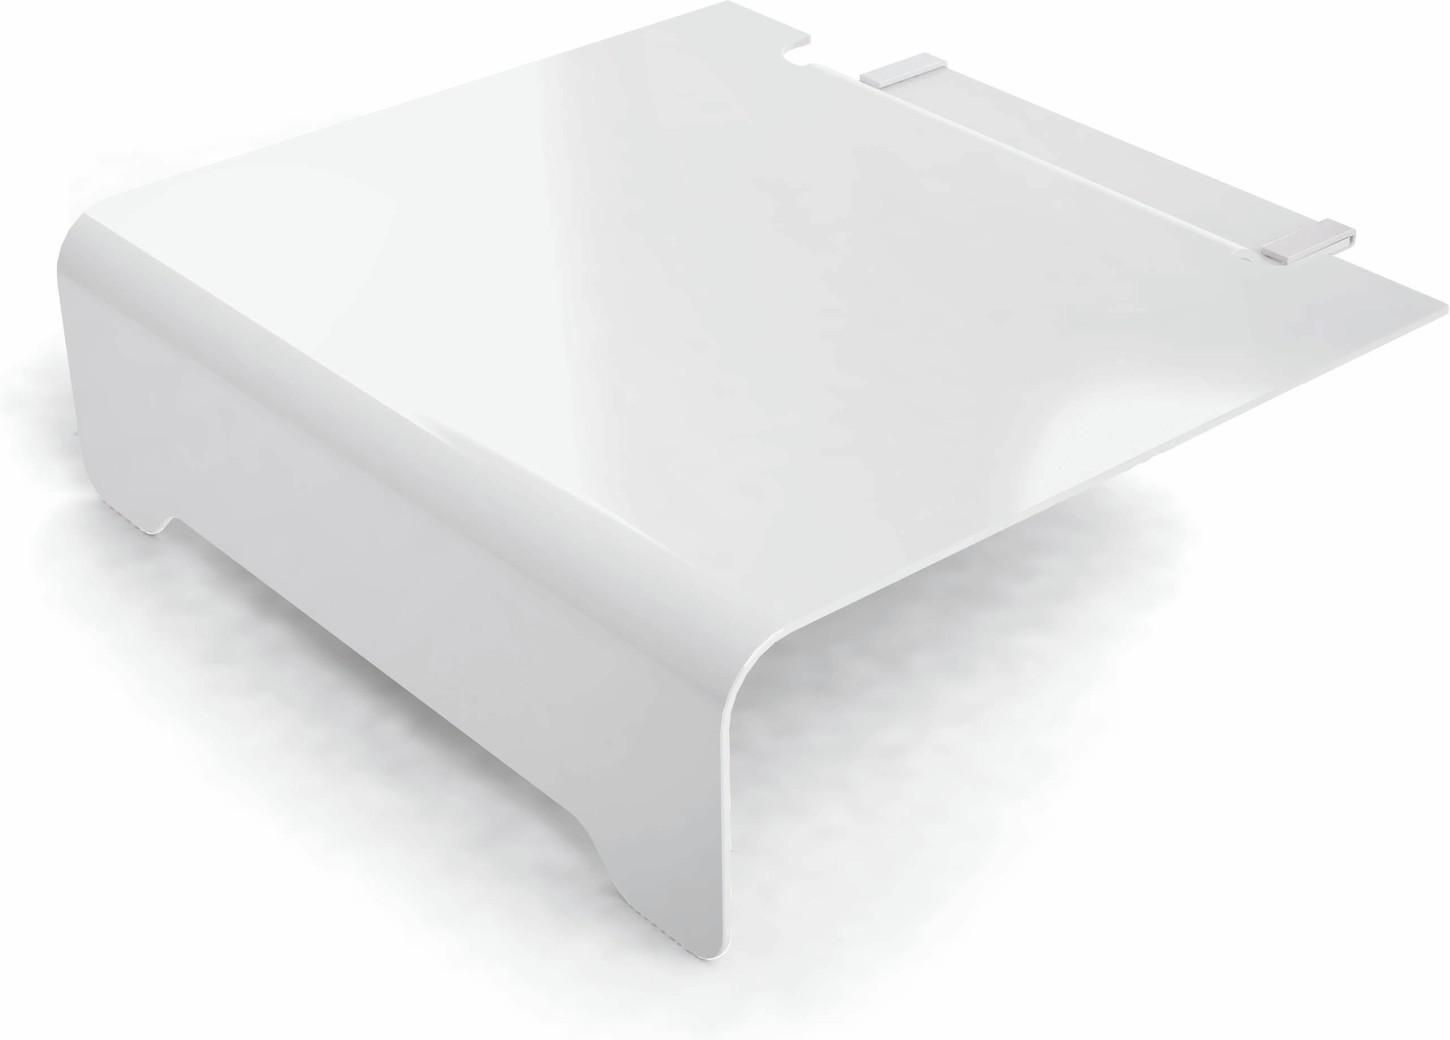 Elements footrest 70 - white